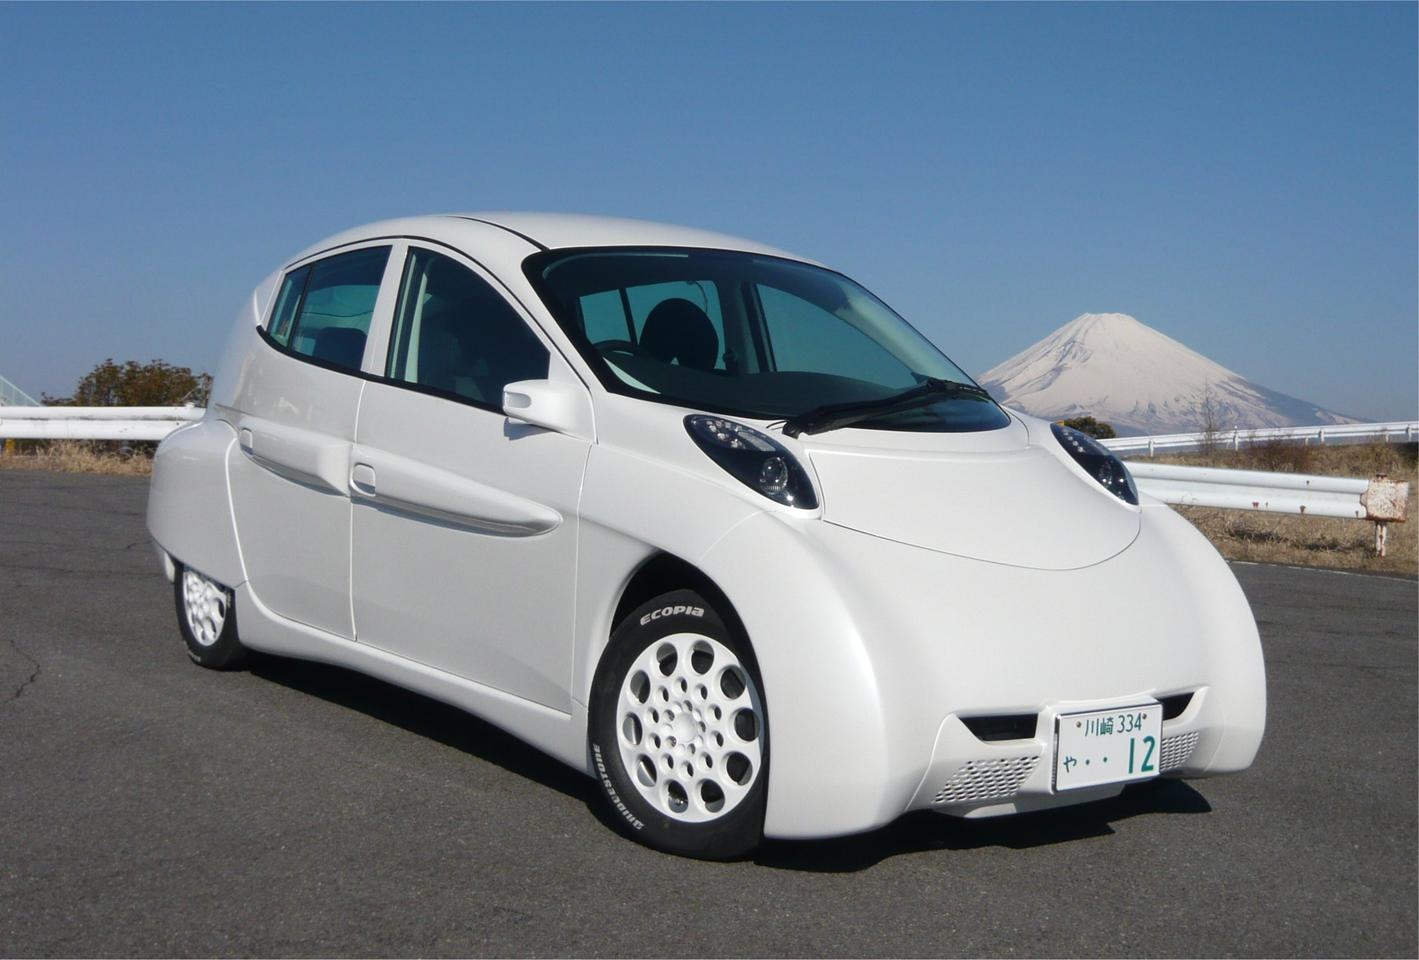 The prototype SIM-LEI electric car has a claimed range of 300 kilometers, traveling at a constant speed of 100 km/h